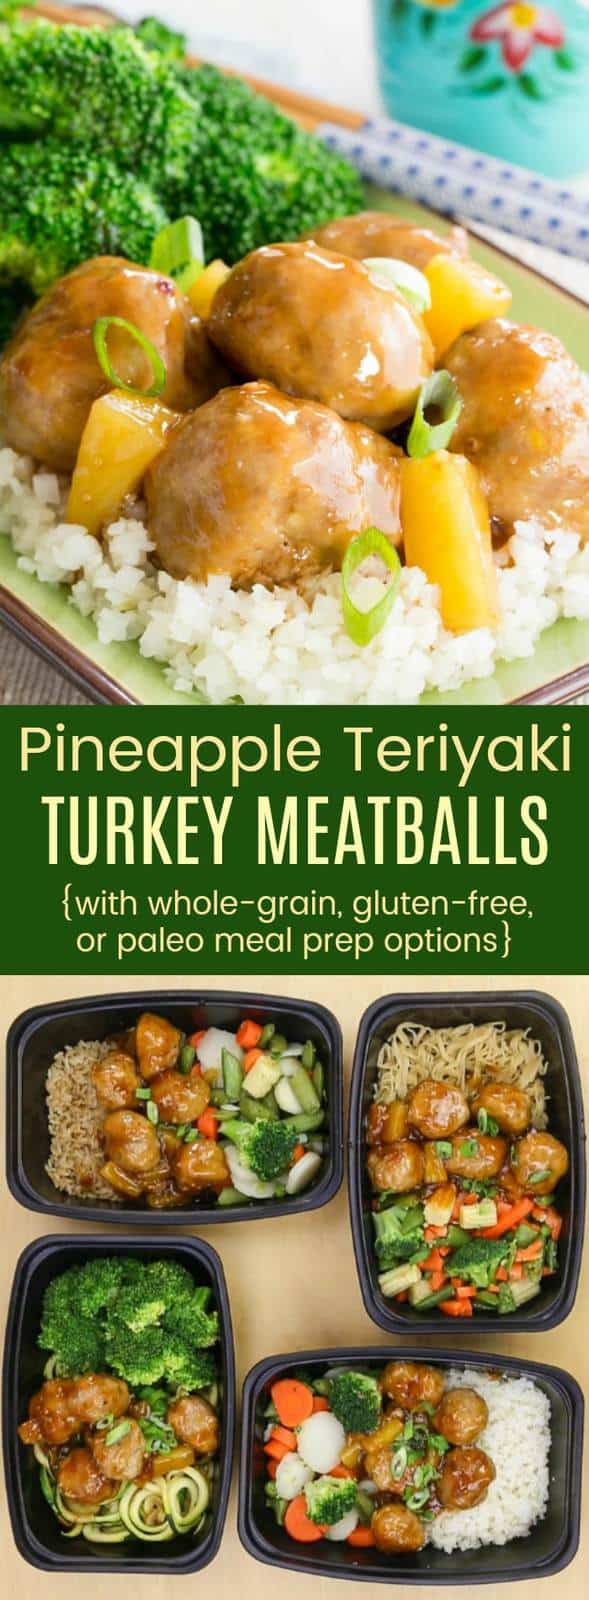 Pineapple Teriyaki Turkey Meatballs with Whole Grain Gluten Free or Paleo Meal Prep Options